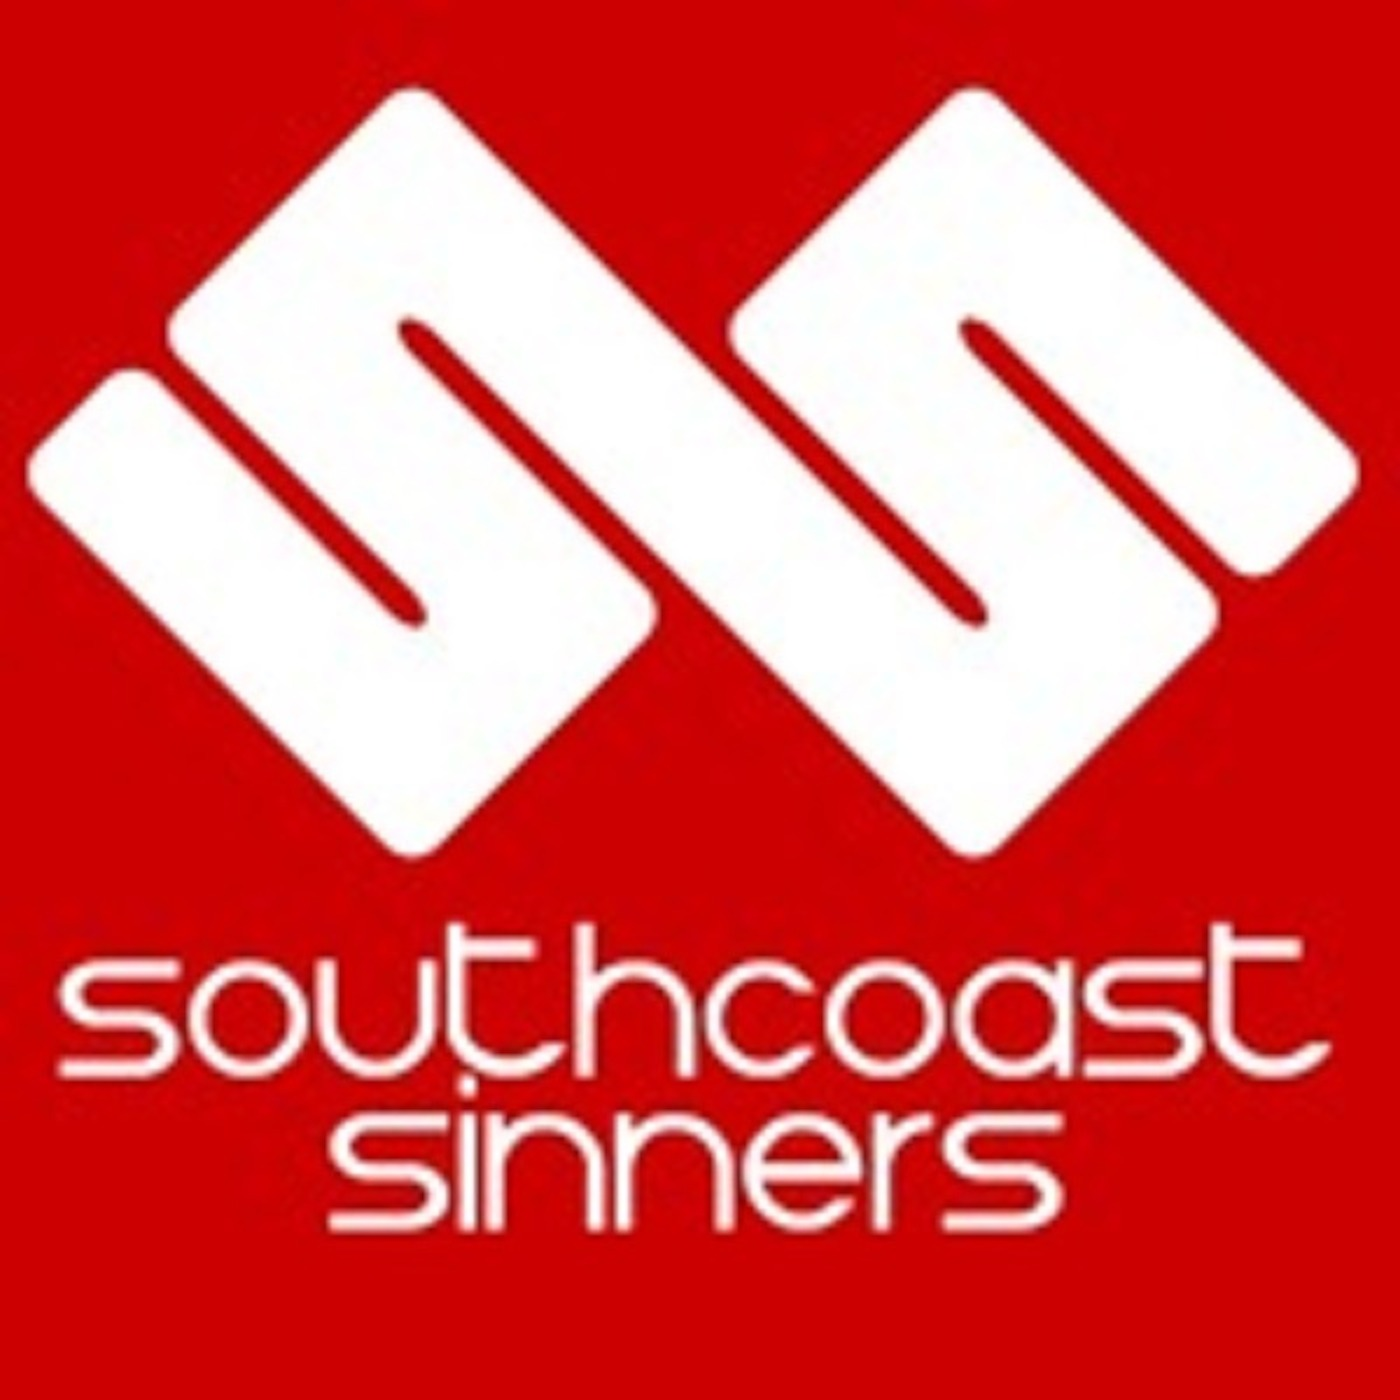 Southcoast Sinners Dance & House Anthem - Only the premium cuts of house from around the world